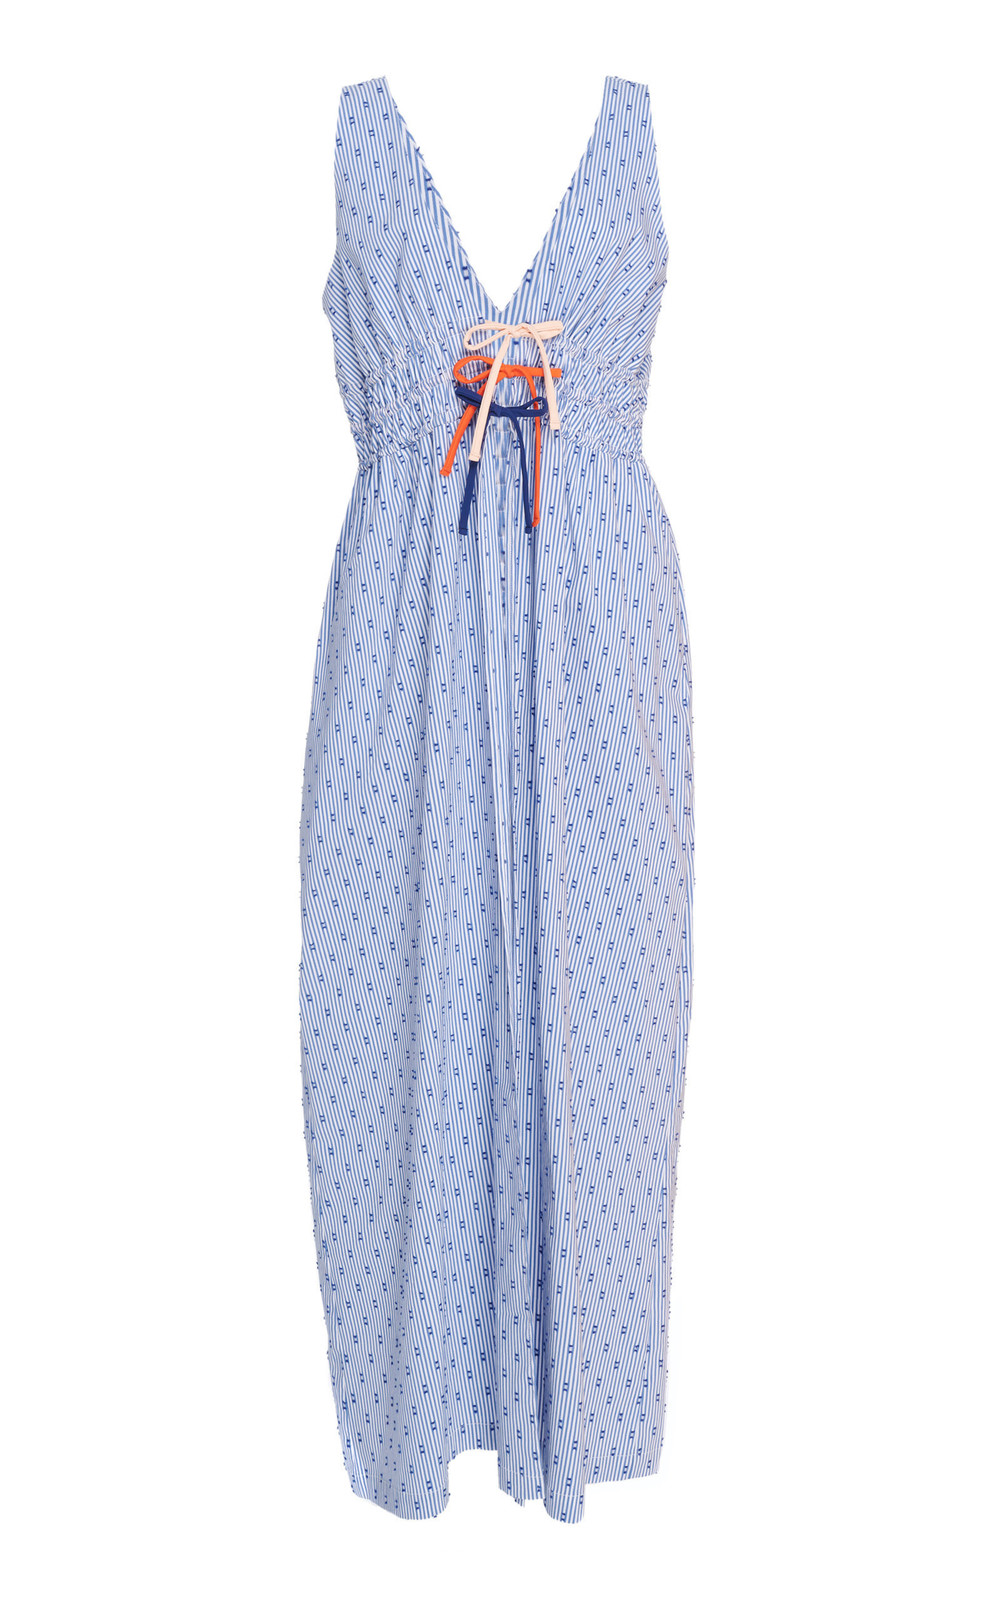 Flagpole Mabel Striped Cotton-Blend Midi Dress in blue